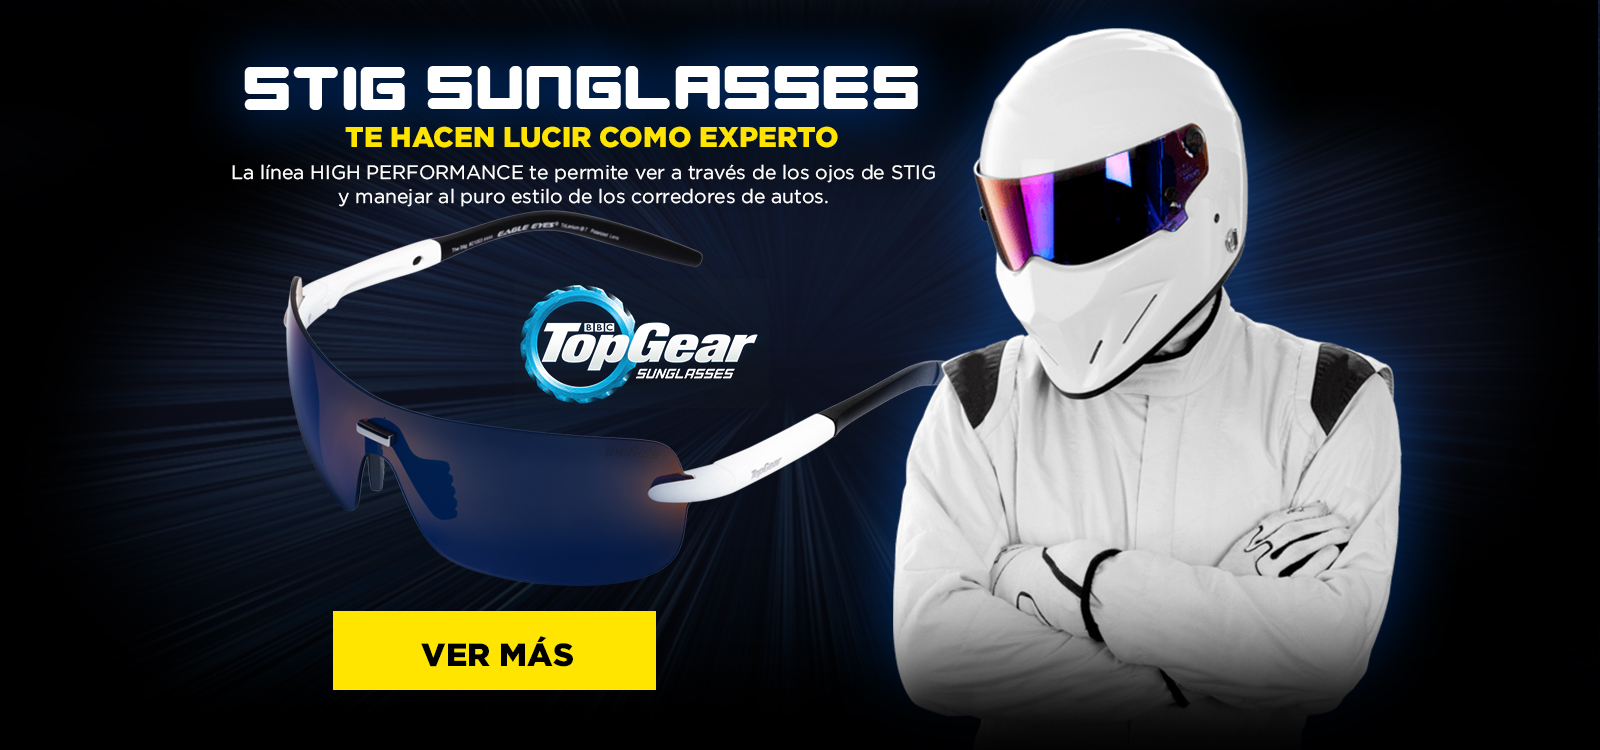 Eagle Eyes Stig para manejar